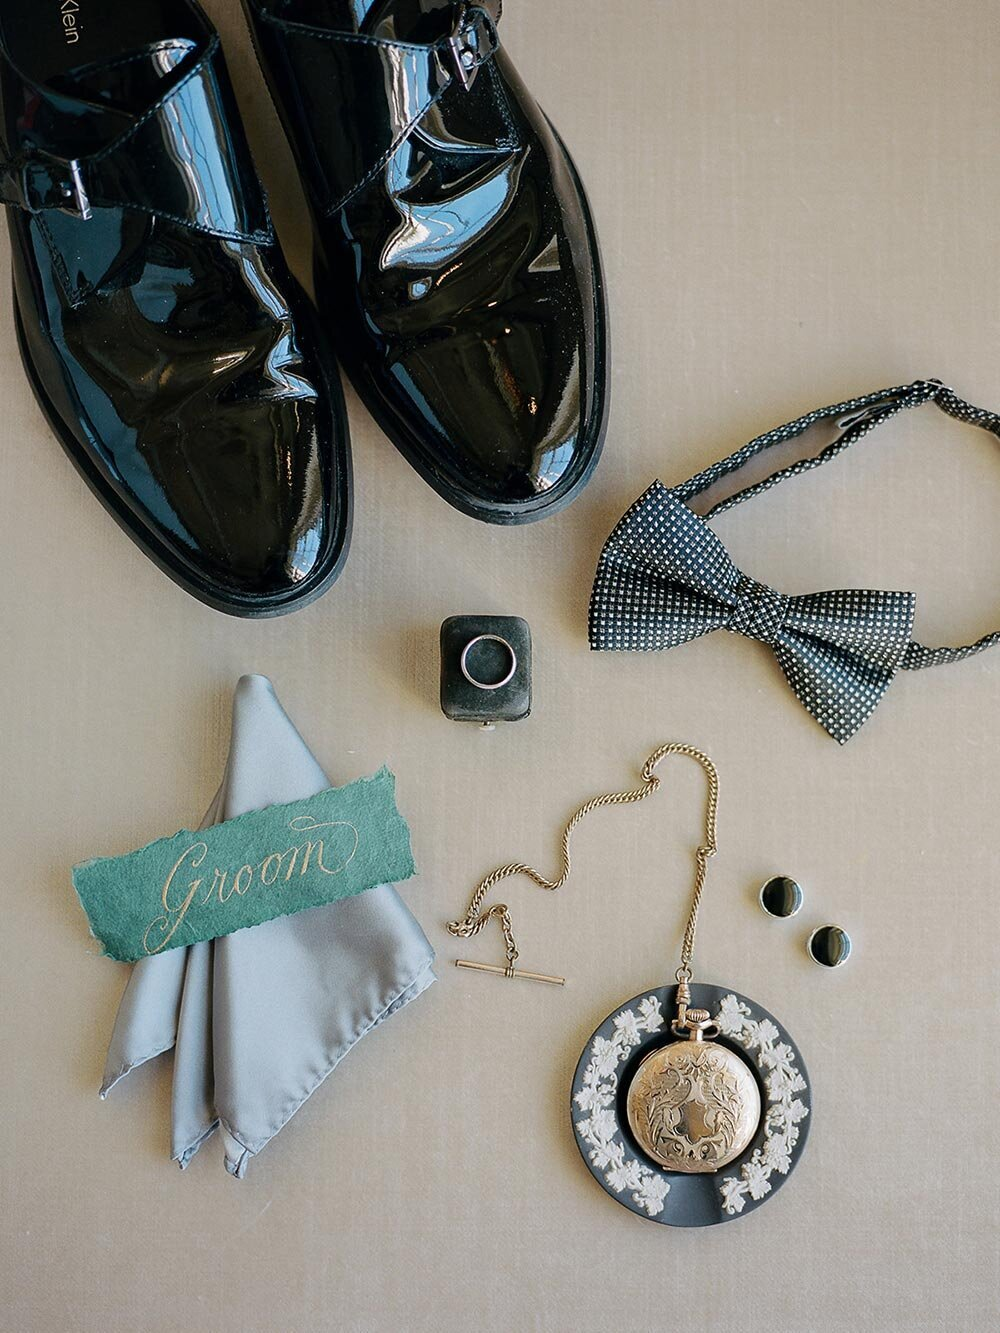 Flatlay of groom's wedding day shoes, hankerchief and patterned bow tie